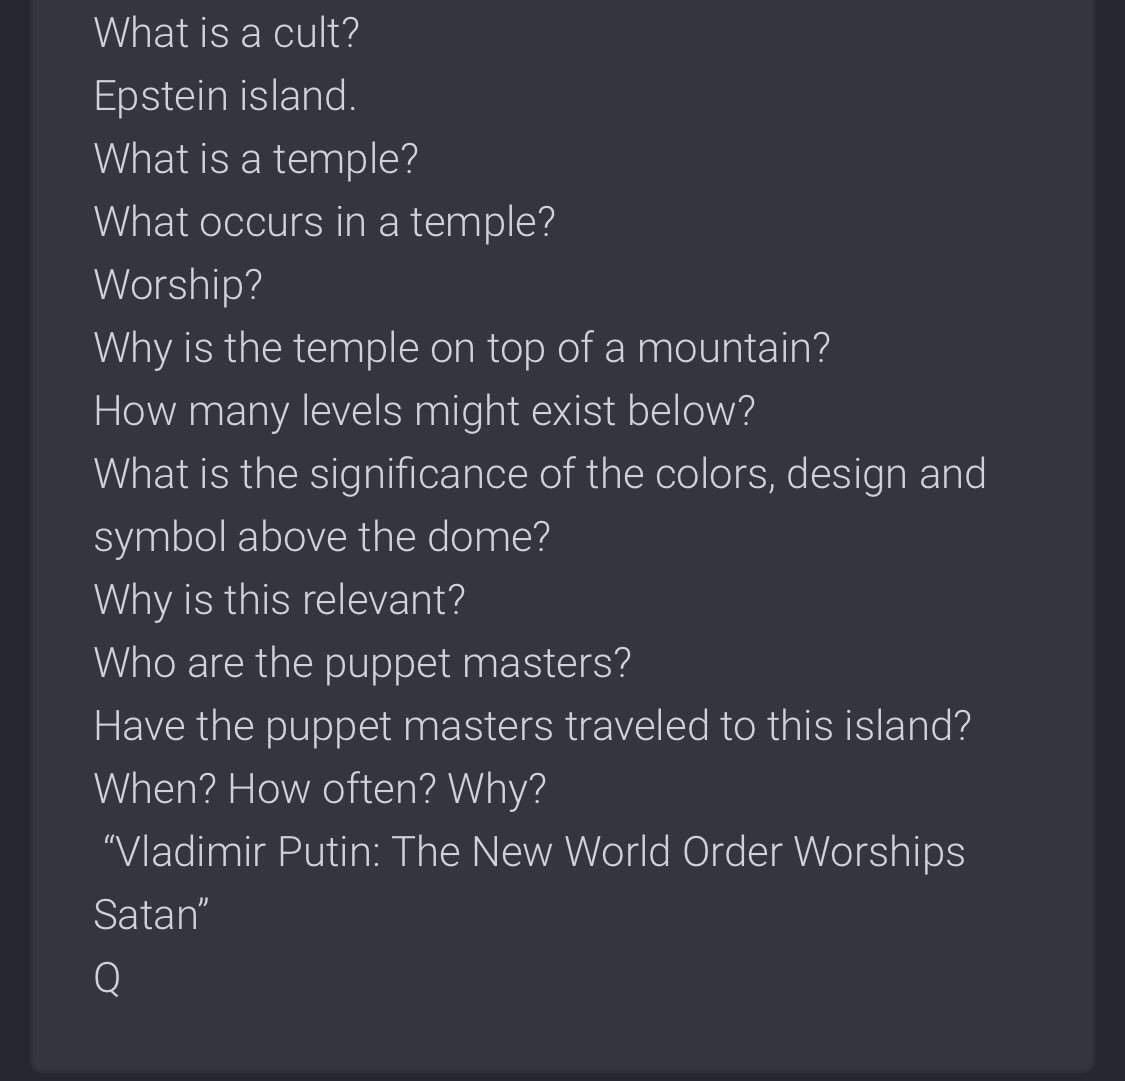 QAnon July 18 2019 - Change Is Coming - Epstein Temple